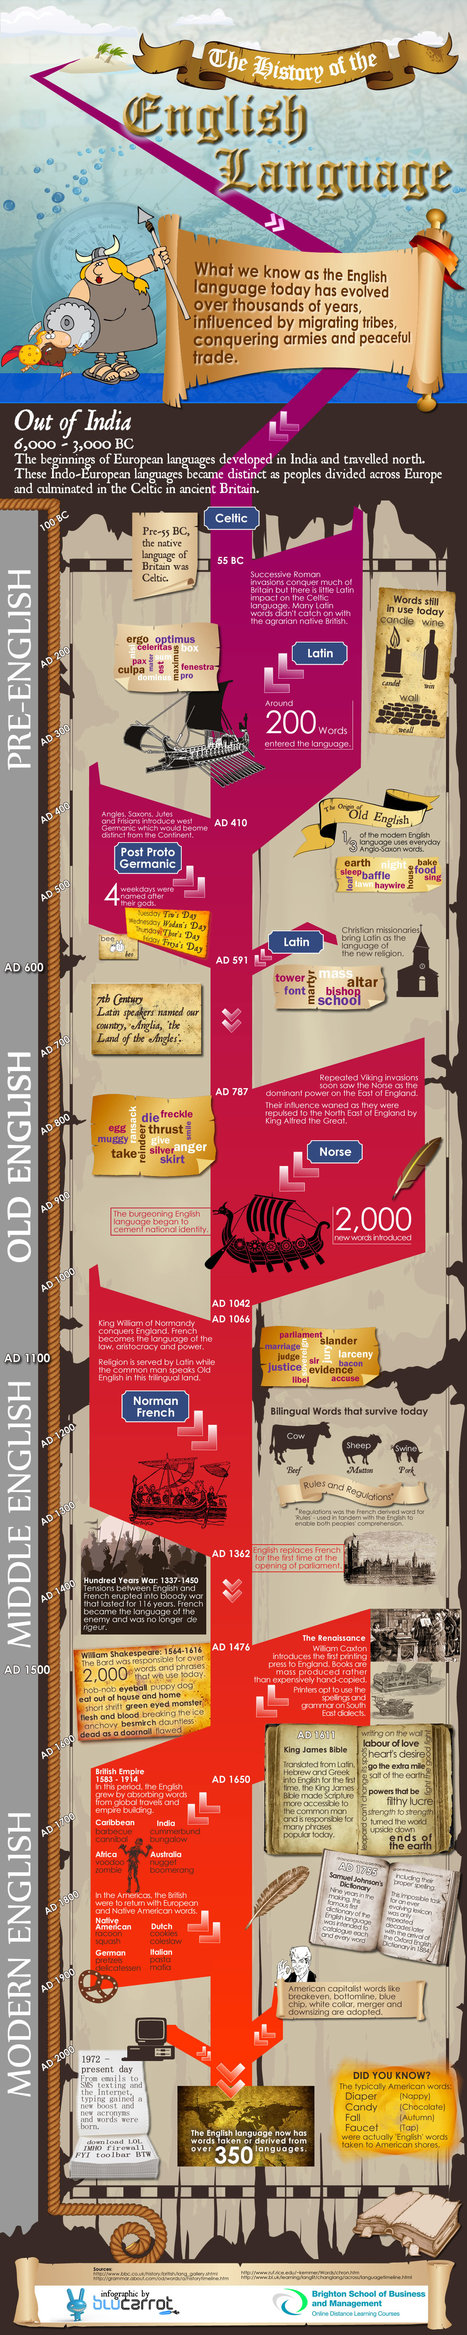 The History of the English Language - Infographic | 2.0 Tools... and ESL | Scoop.it